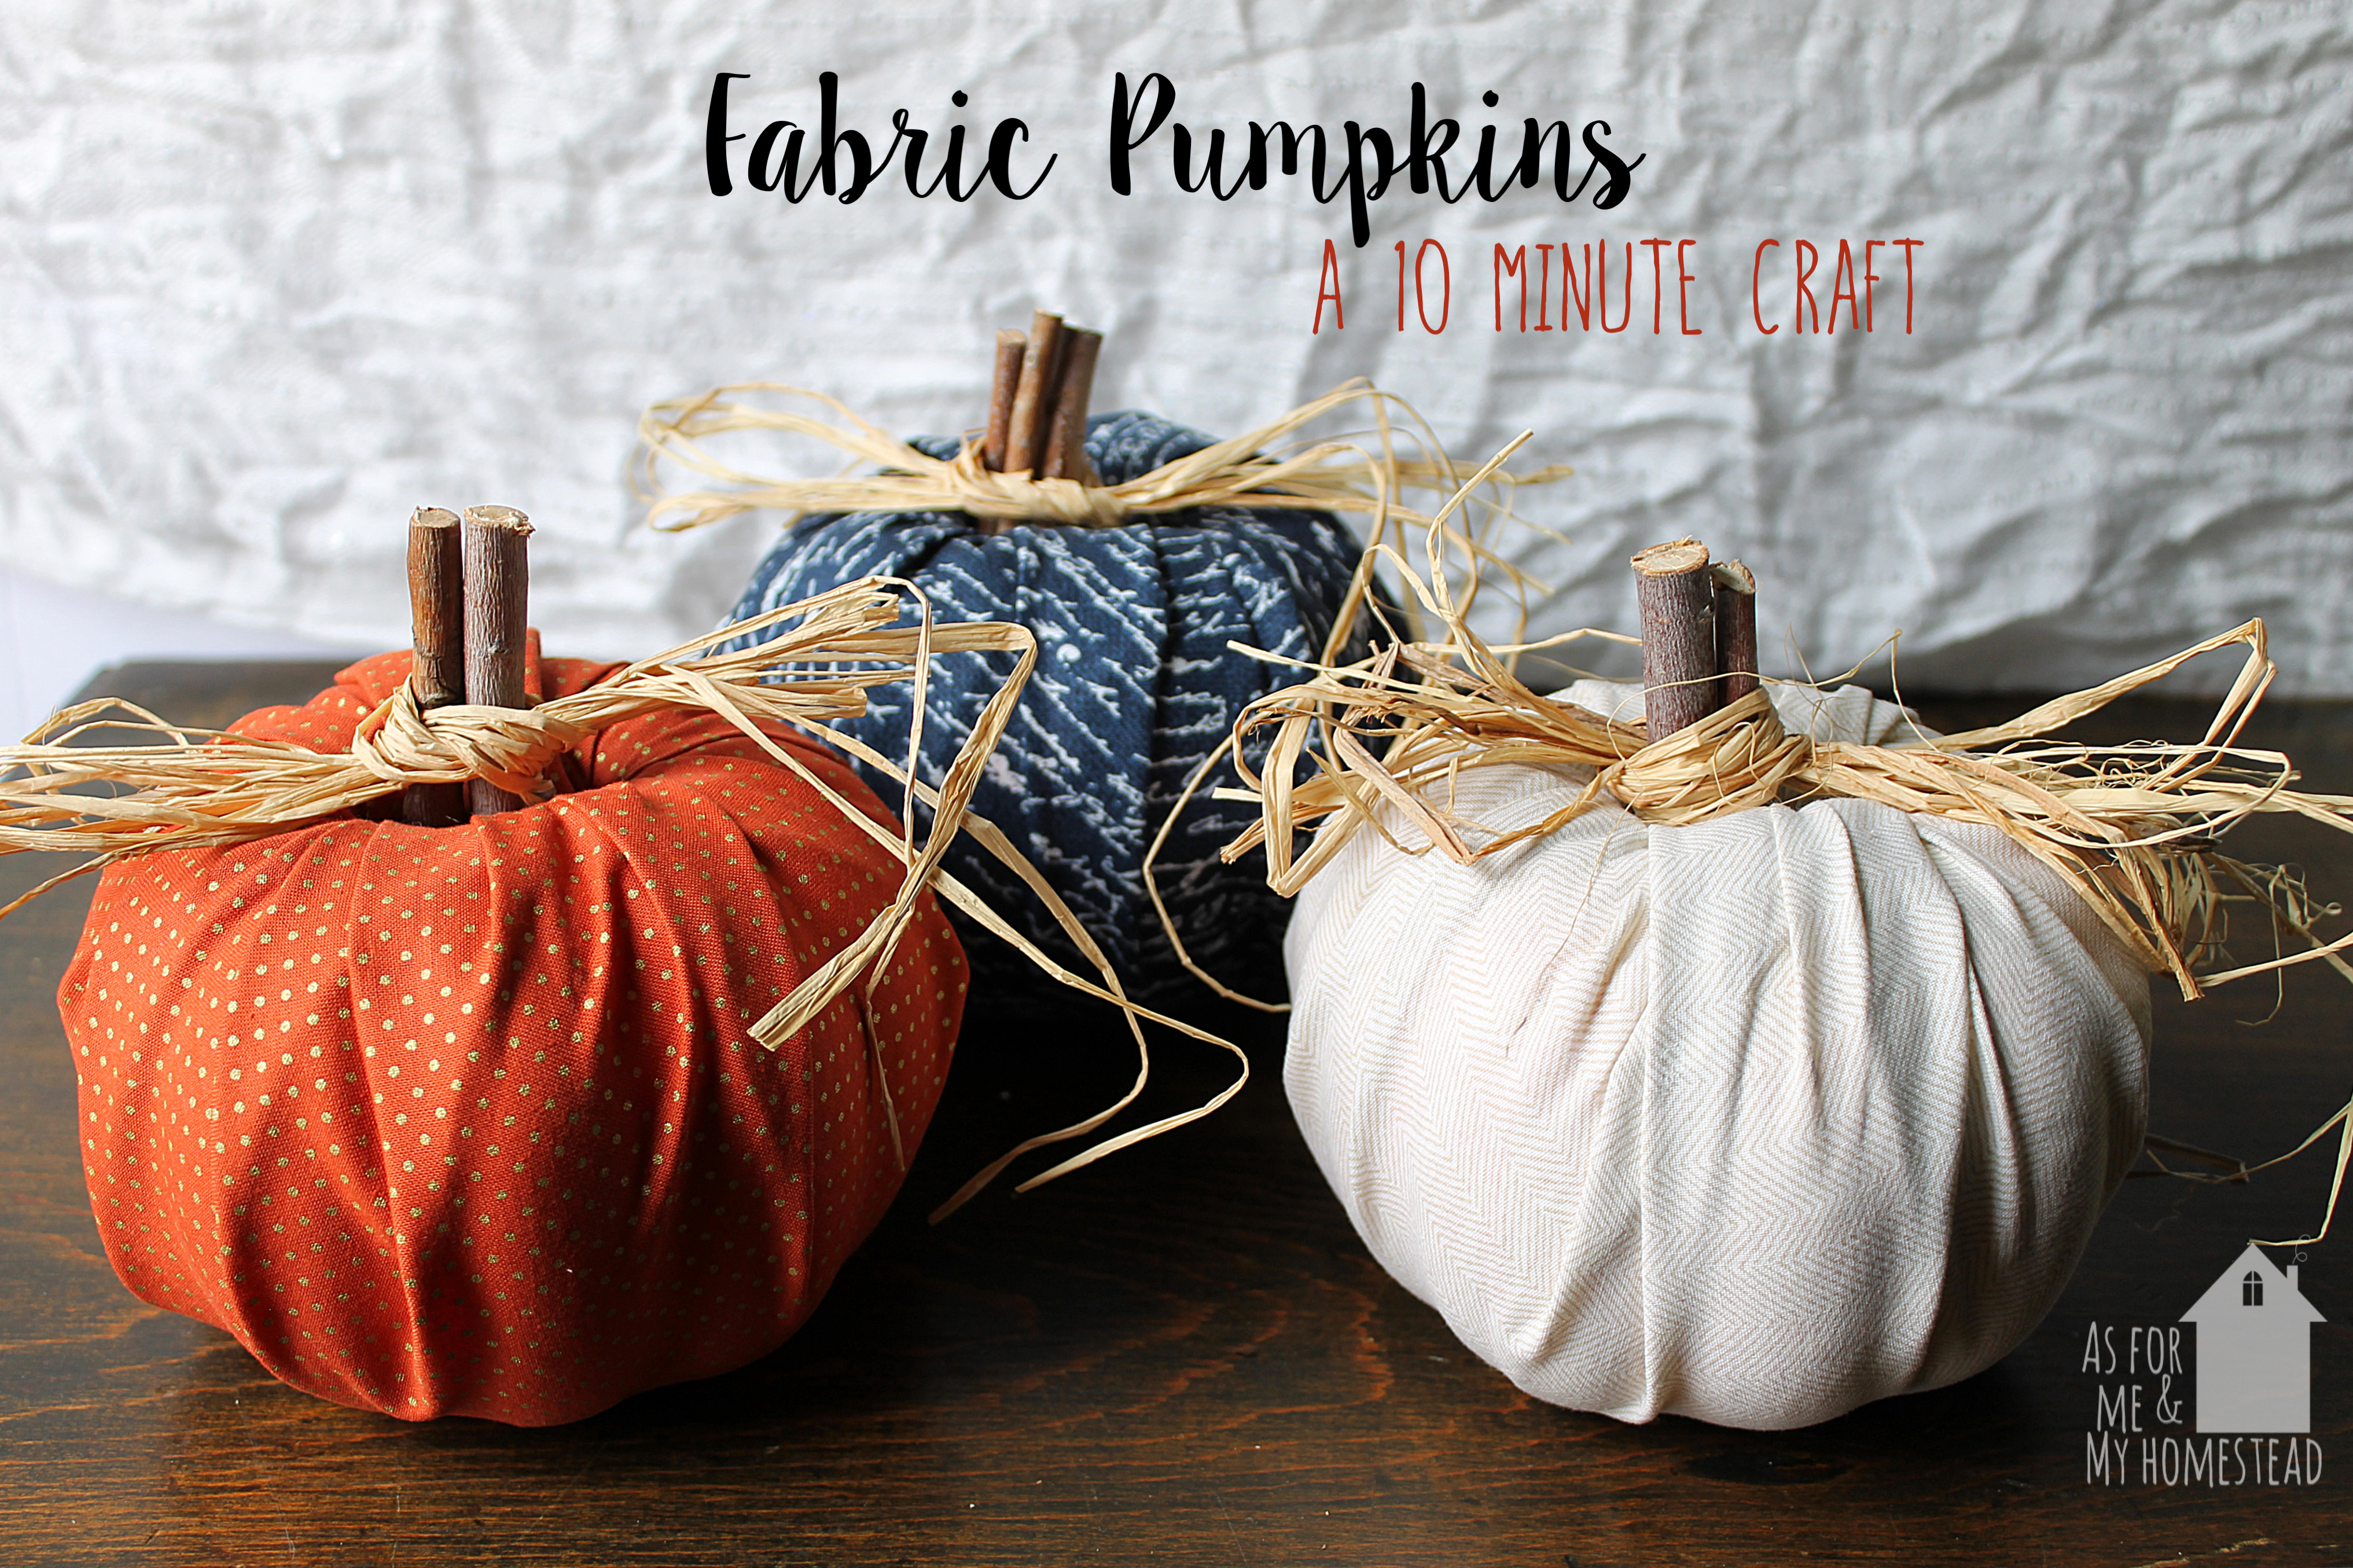 Fabric Pumpkins A 10 Minute Craft As For Me And My Homestead